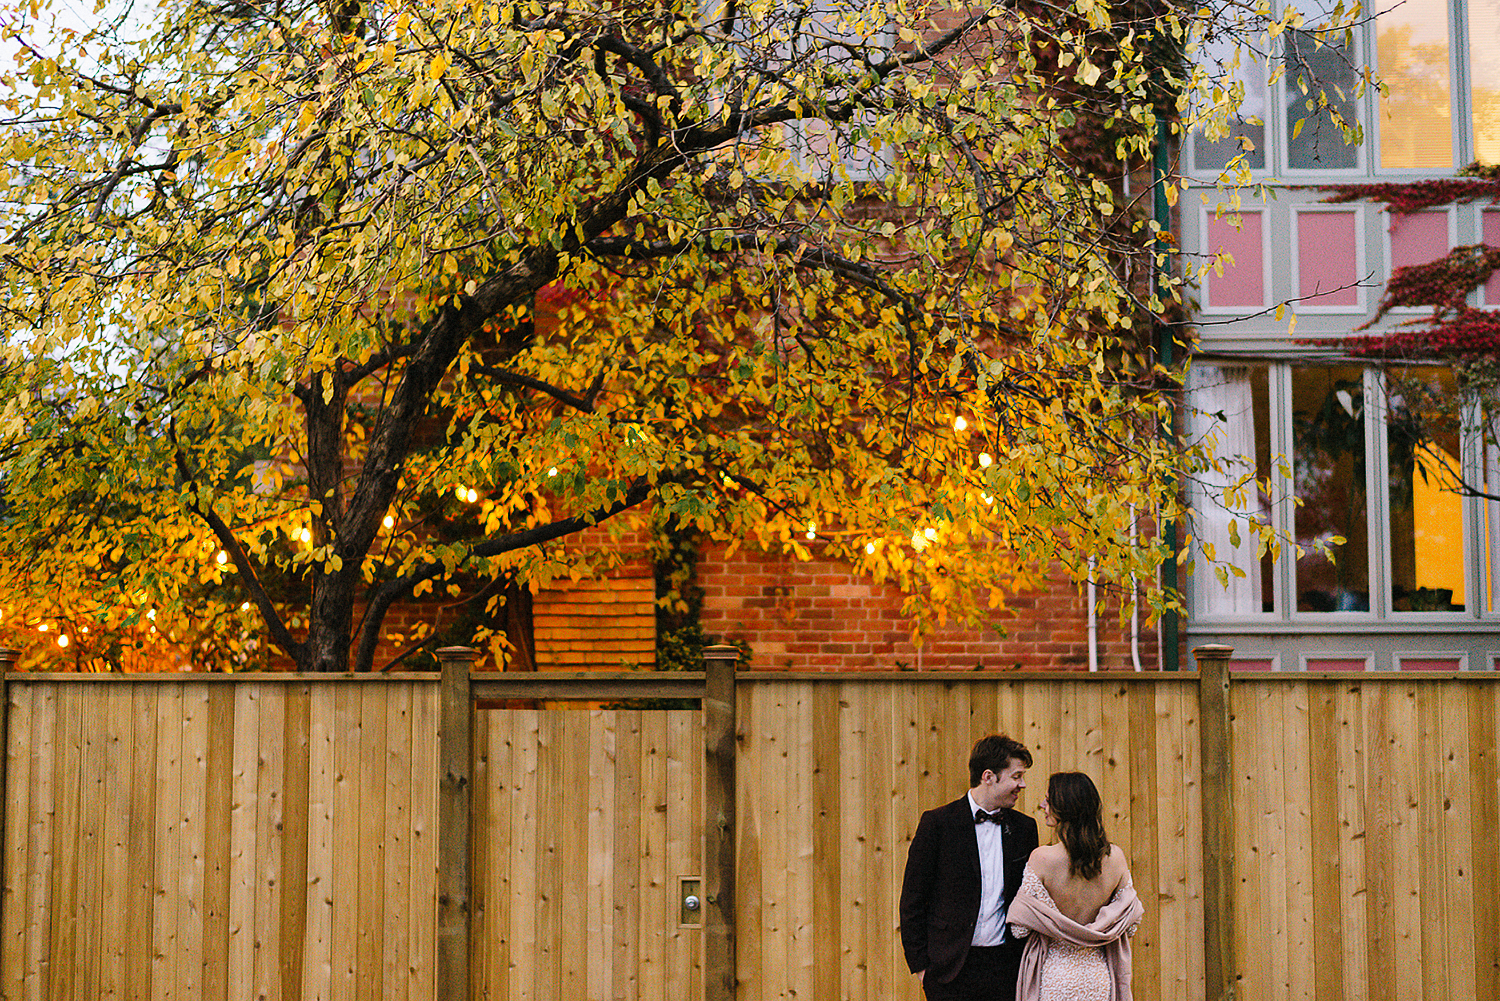 43-Best-Elopement-Photographers-Toronto-Fall-Wedding-Elopement-Modern-Vintage-Hipster-Beautiful-Sunset-Fall-Colours.JPG